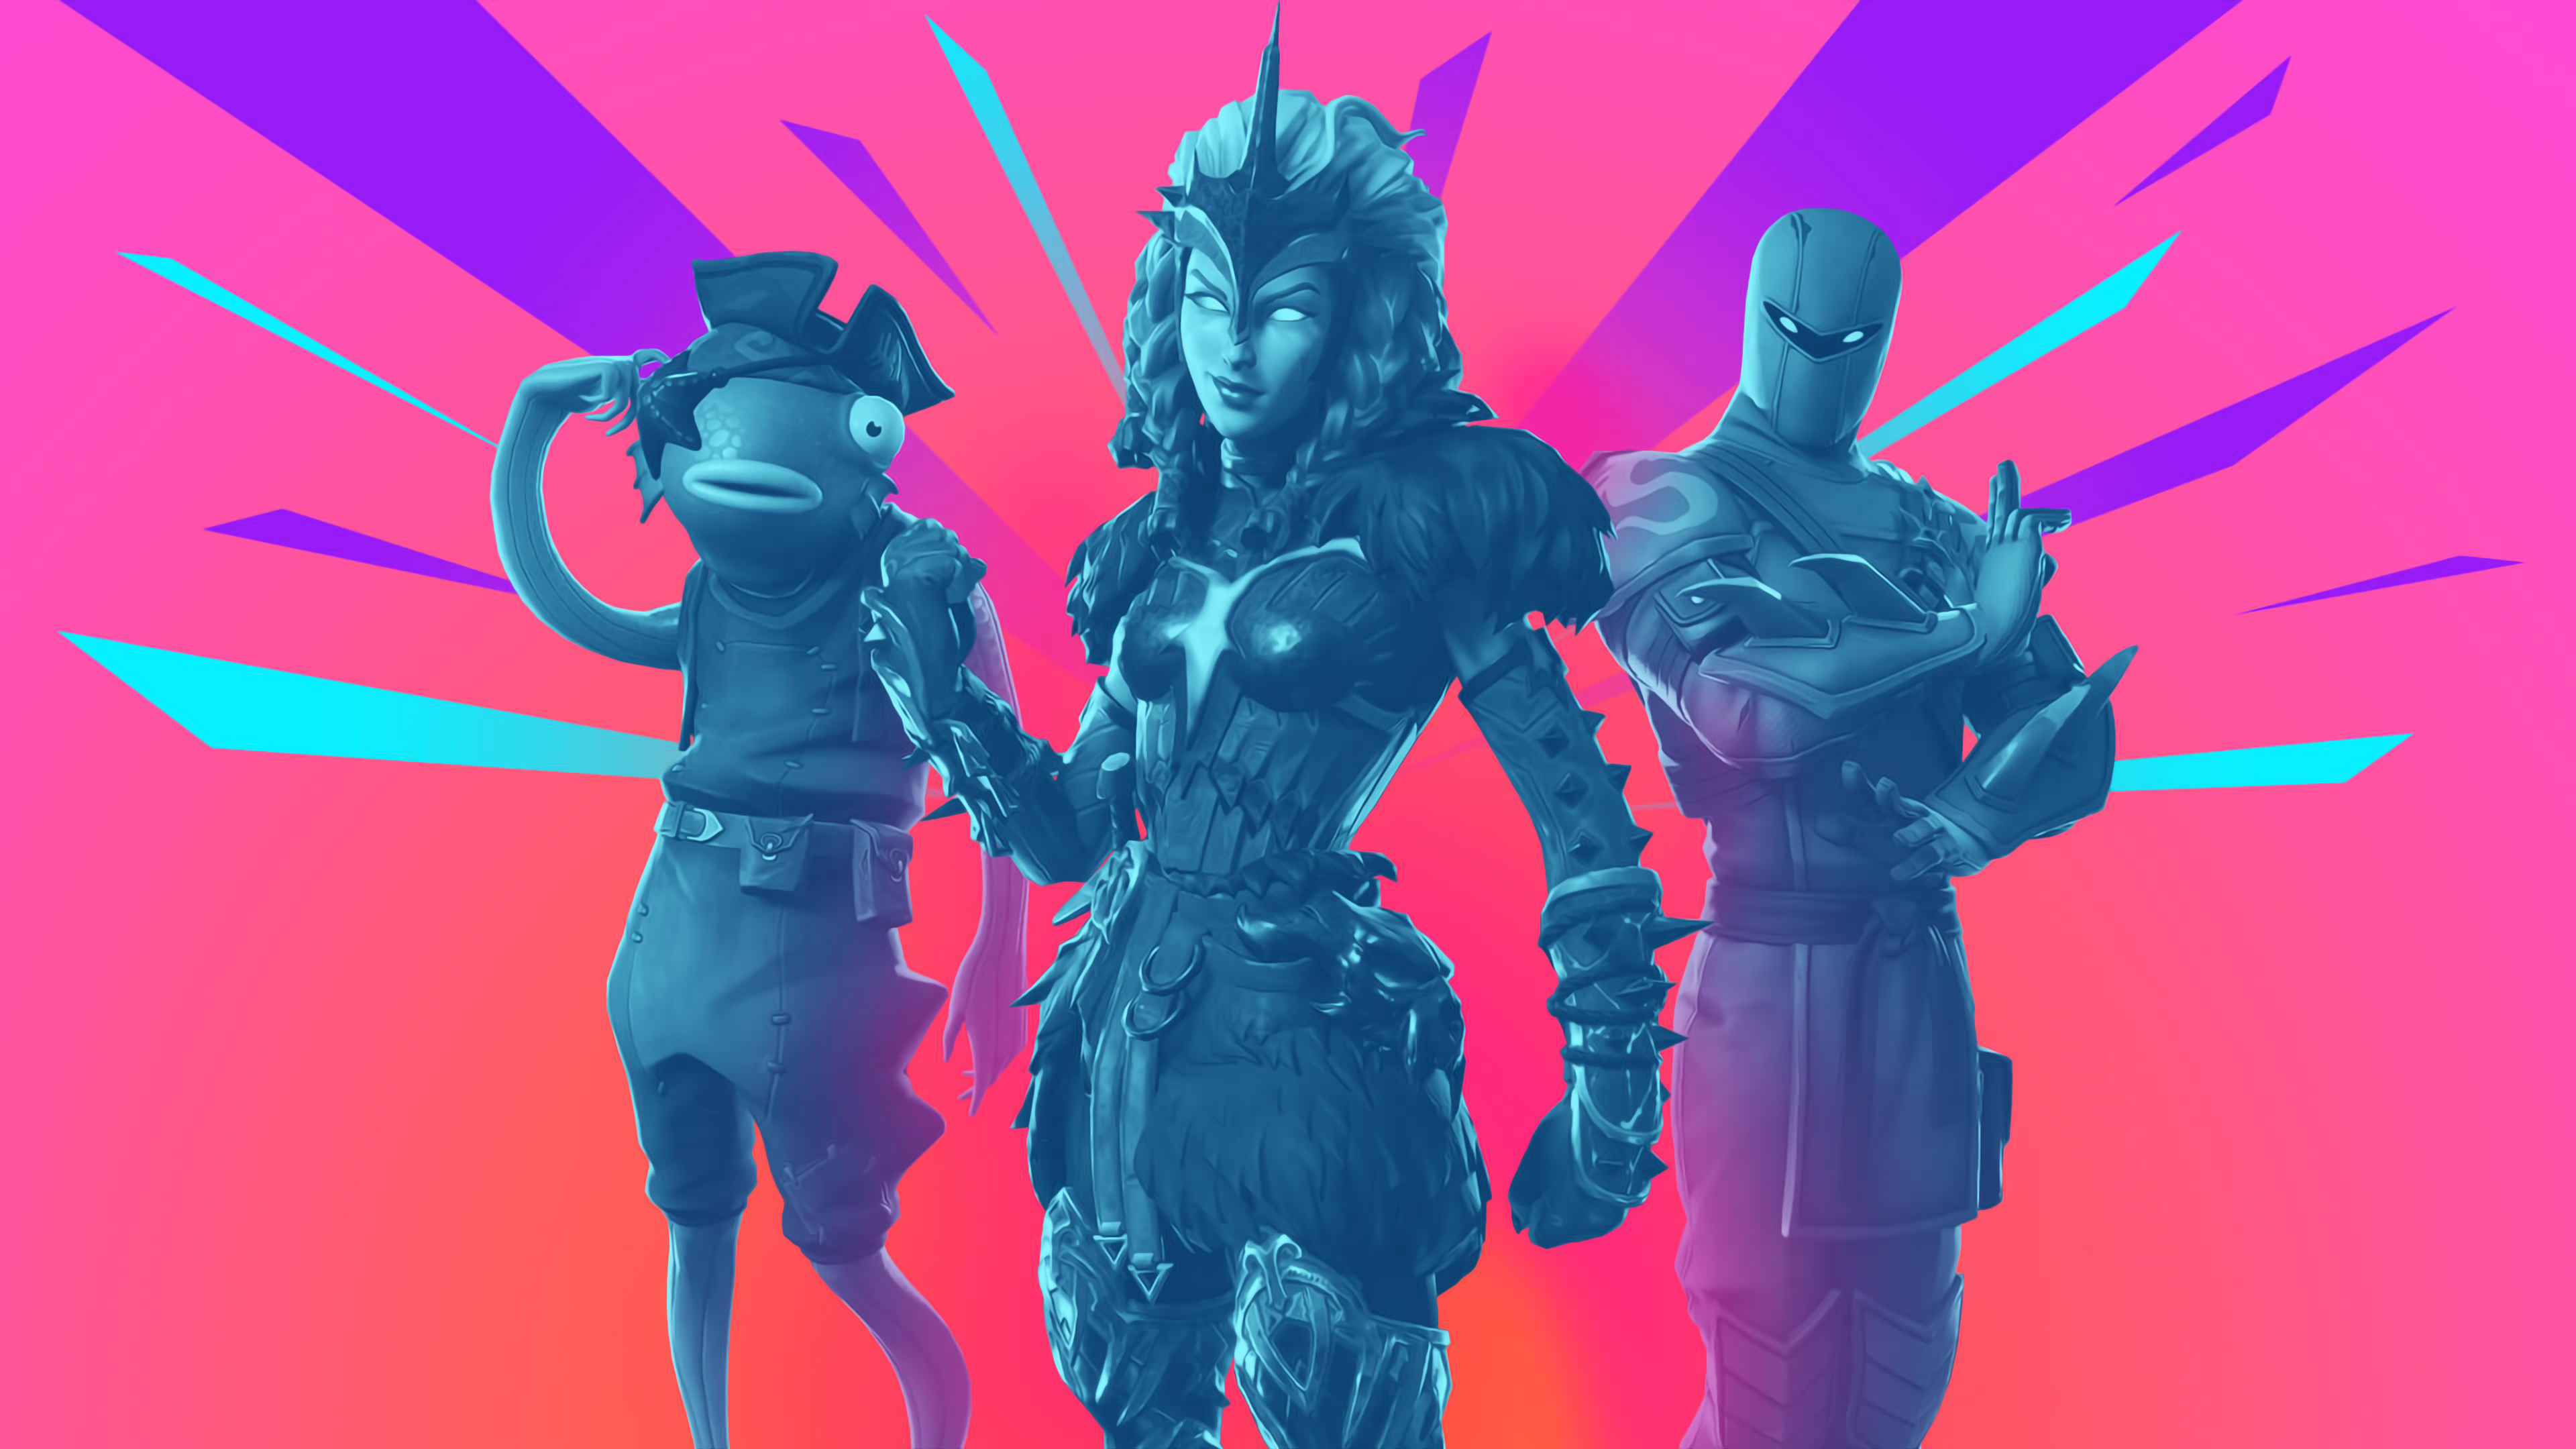 4k Fortnite Wallpaper Latest Hd 4k Wallpaper Skin